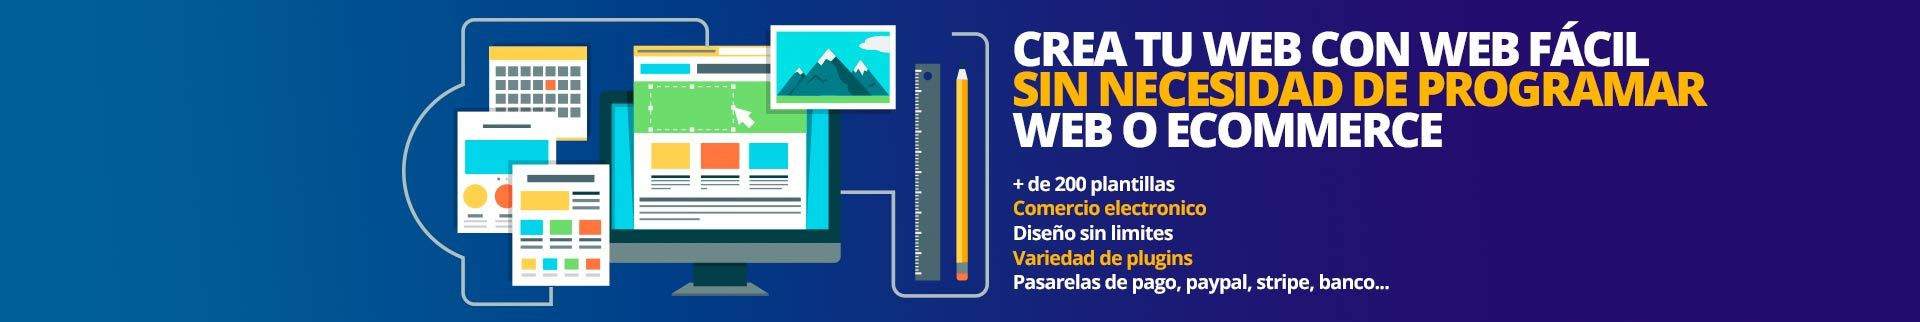 web facil